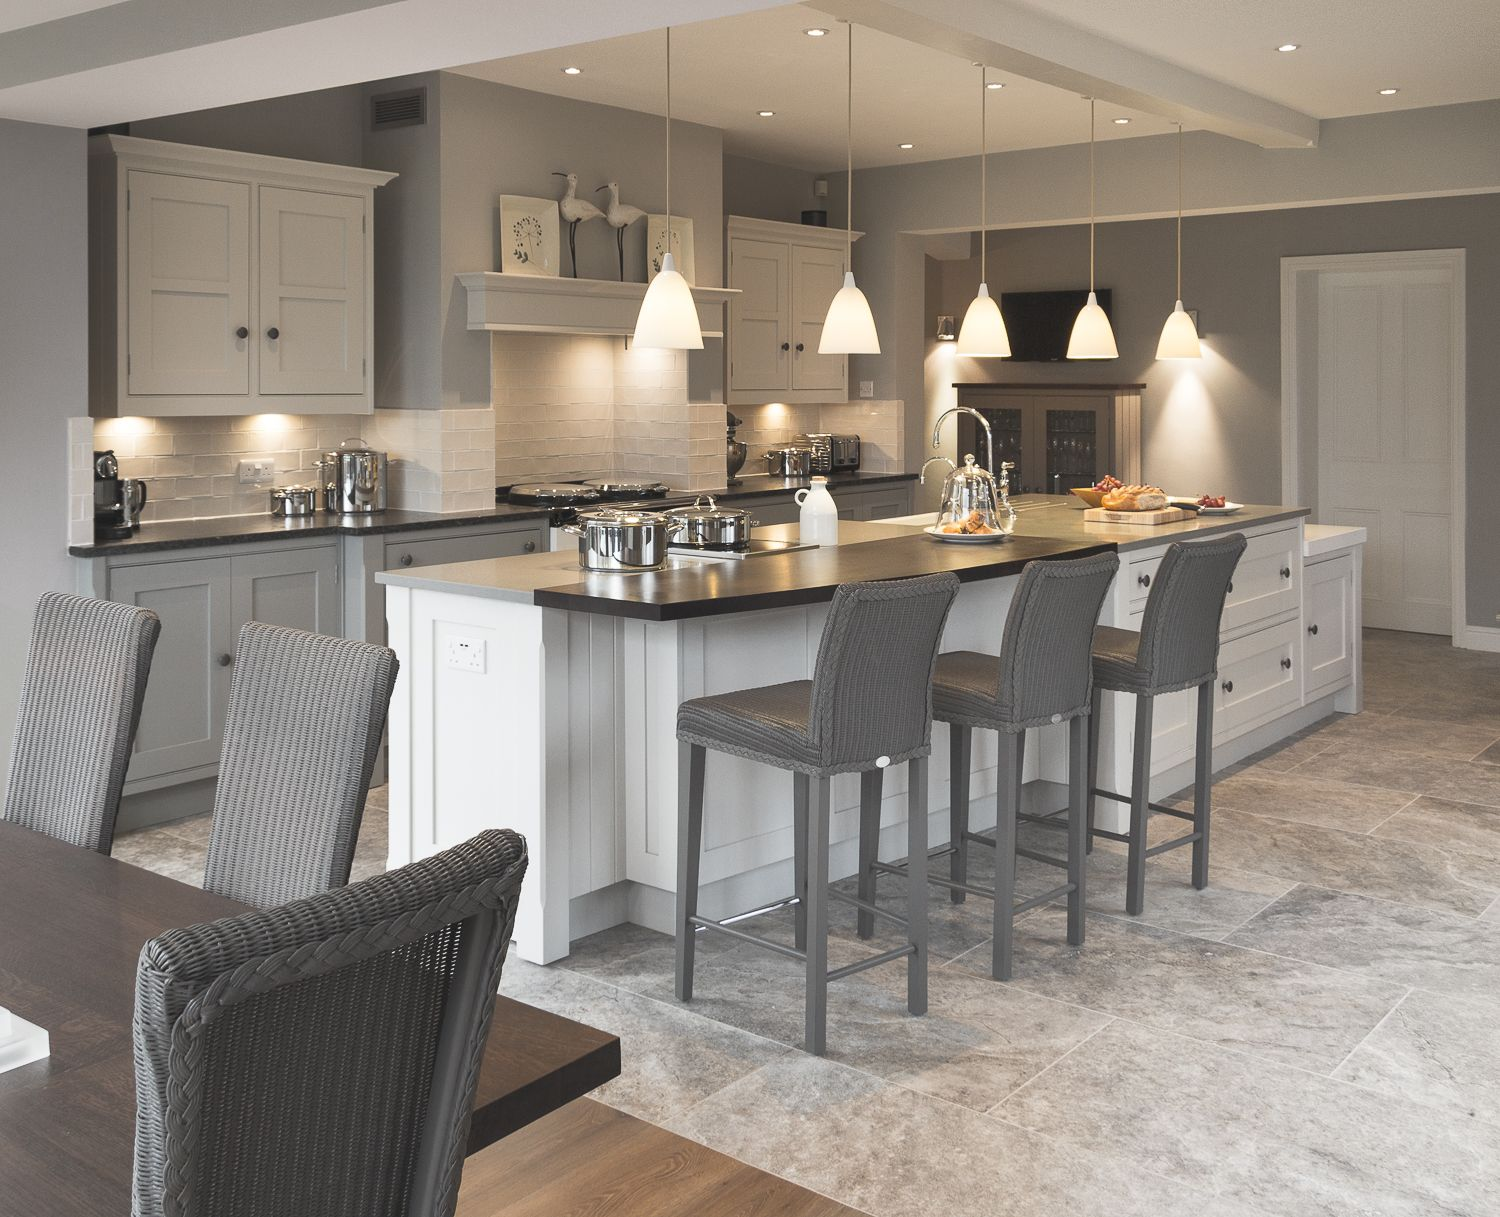 A bespoke shaker kitchen designed by cheshire furniture for Shaker kitchen designs